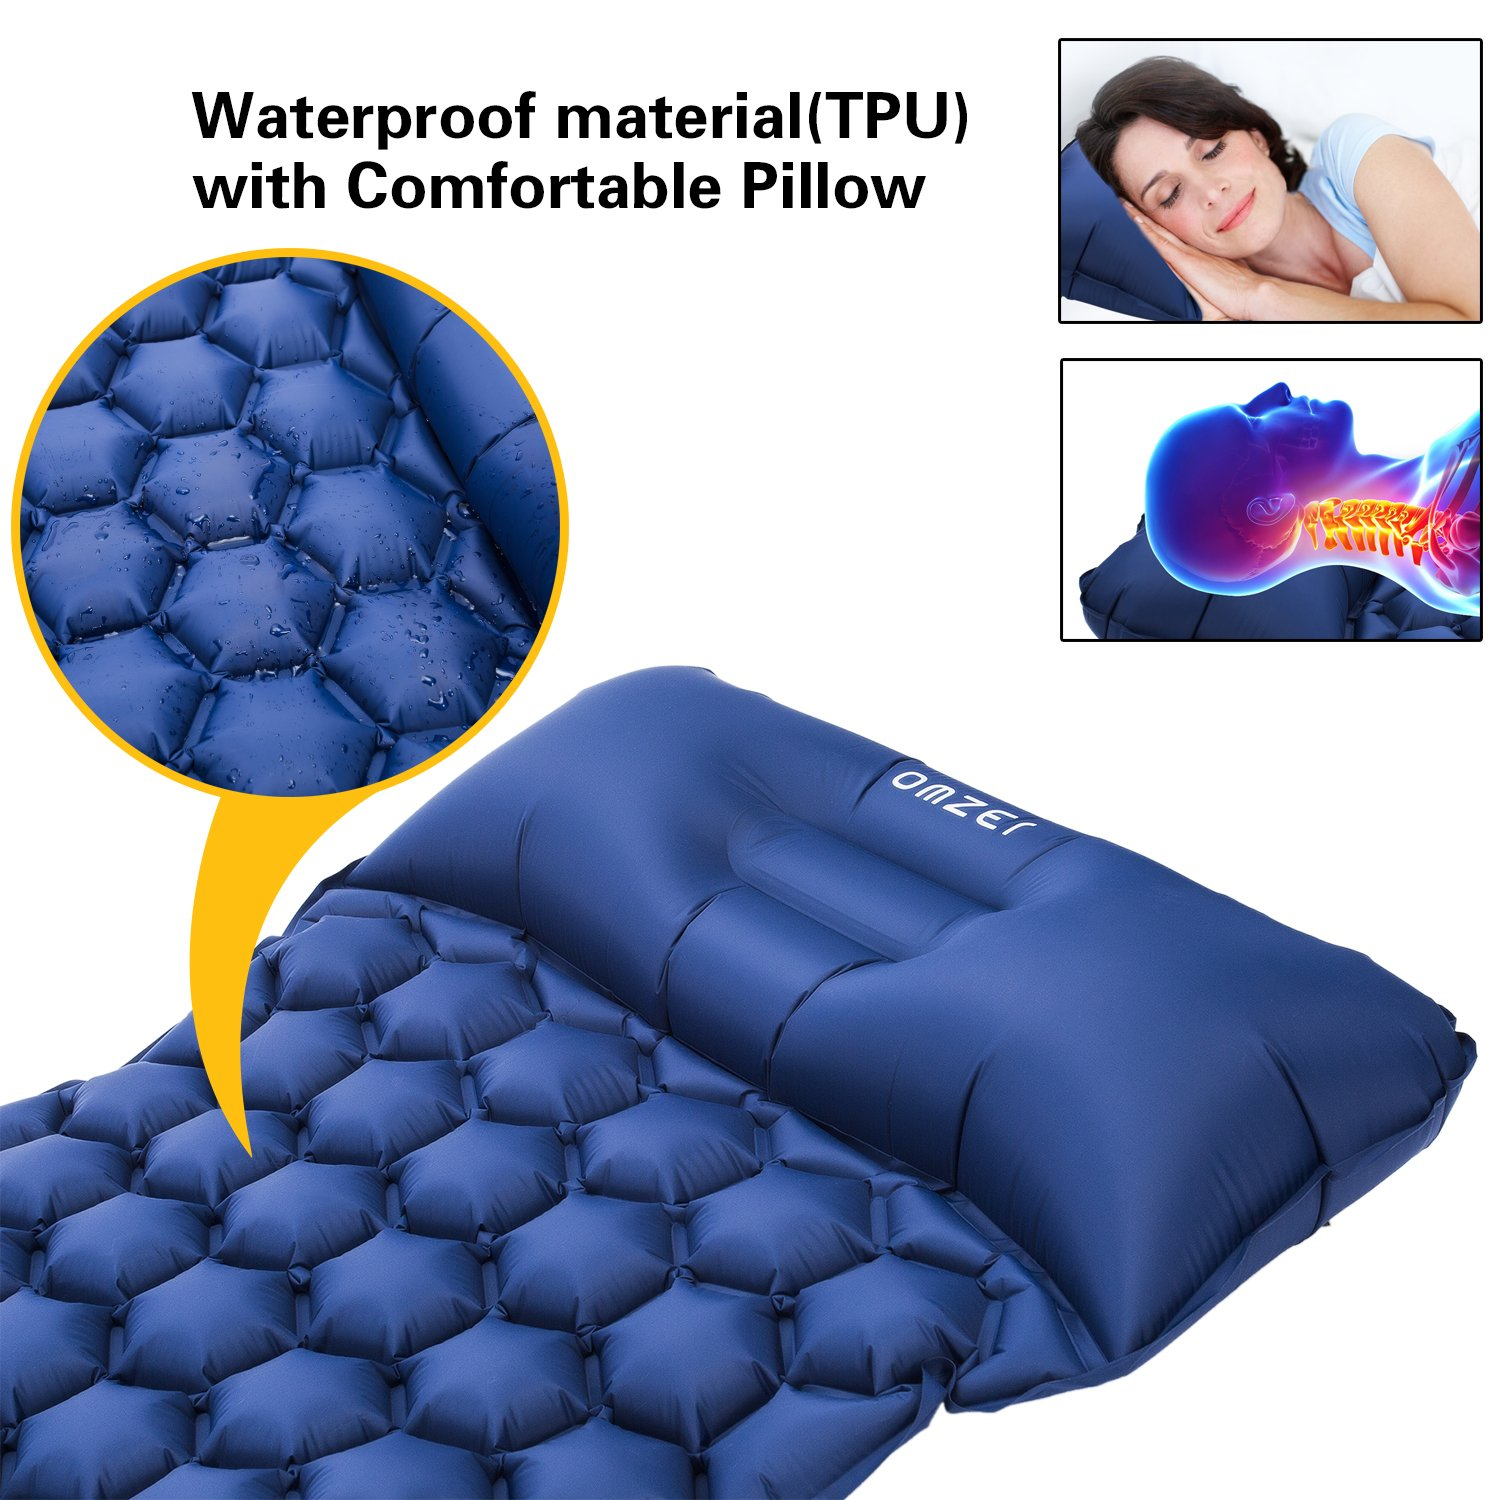 Ultralight Camping Mats For Backpacking Hiking Hammocks Tent With Attached Pillow Compact folding Air Mattress Waterproof And Lightweight Fit Adults Kids omzer Inflatable Sleeping Pad